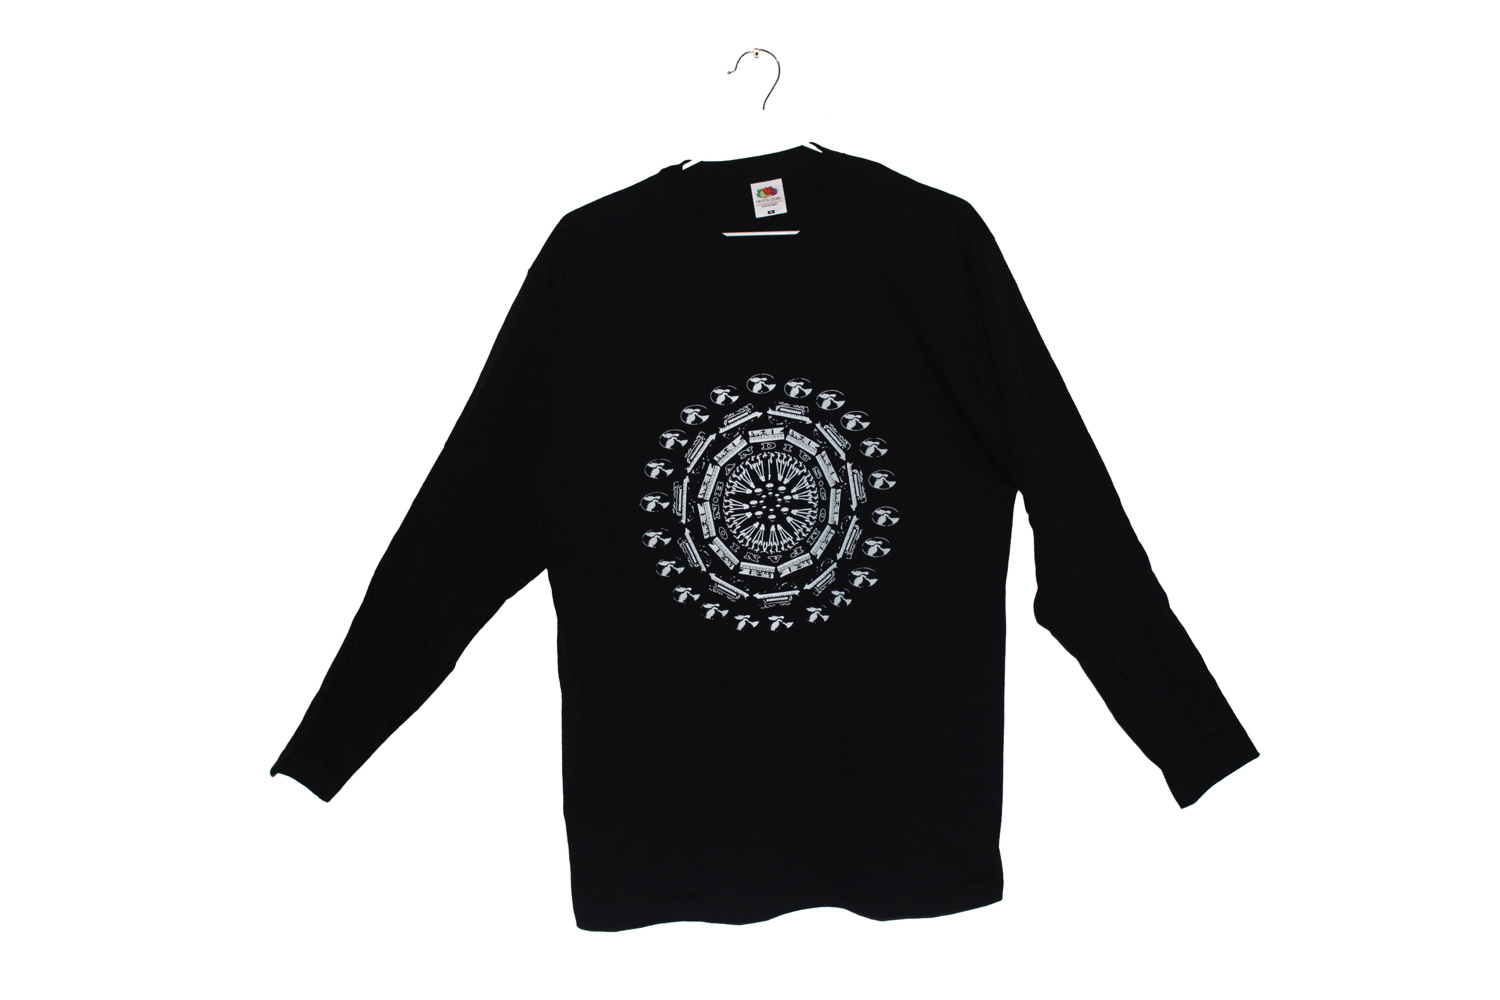 Ban Circle Black Shirt (SOLD OUT)